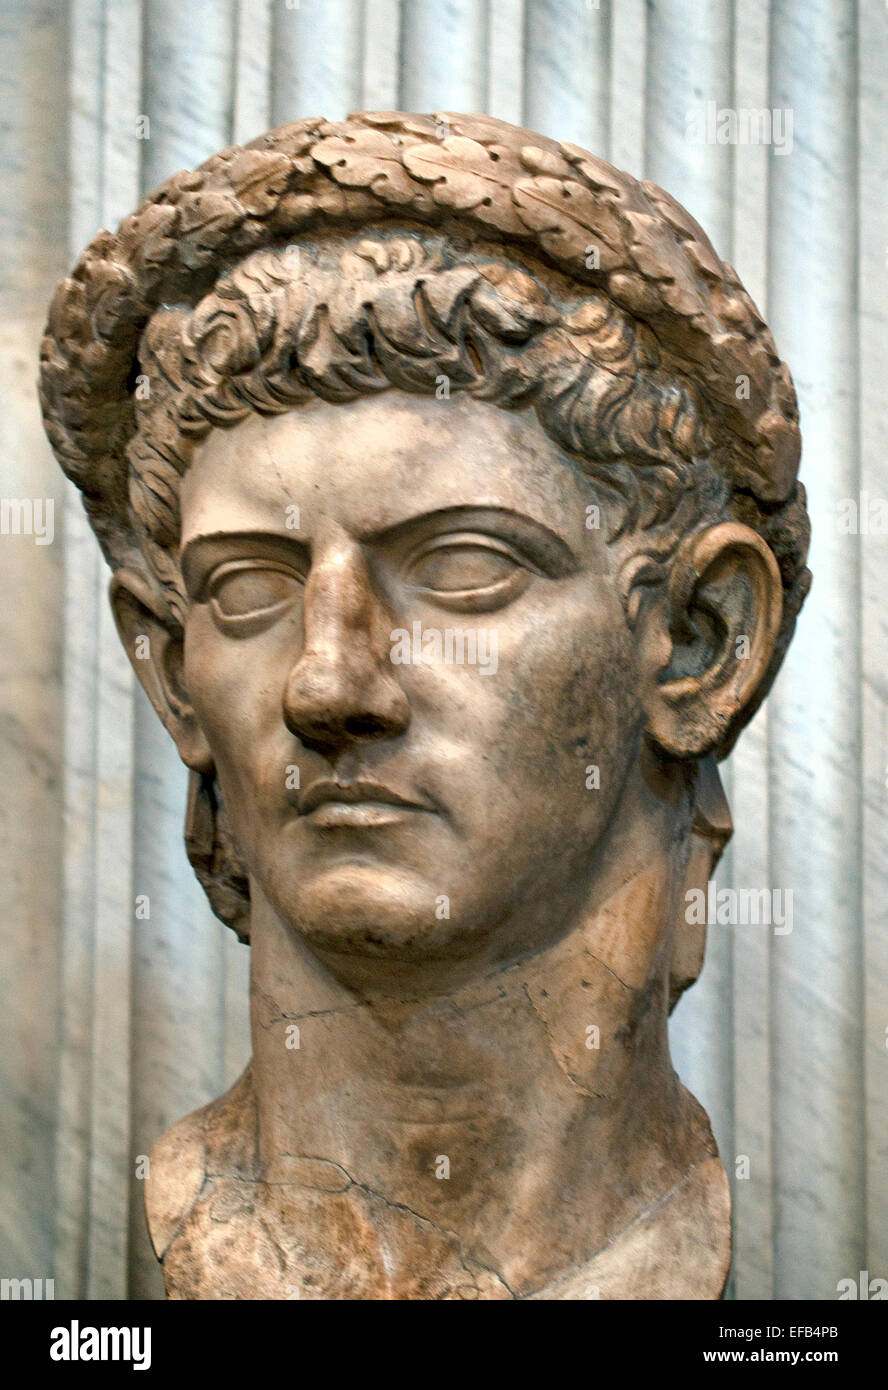 Bust of Emperor Claudius 50 CE, (reworked from a bust of emperor Caligula), It was found in the so-called Otricoli - Stock Image